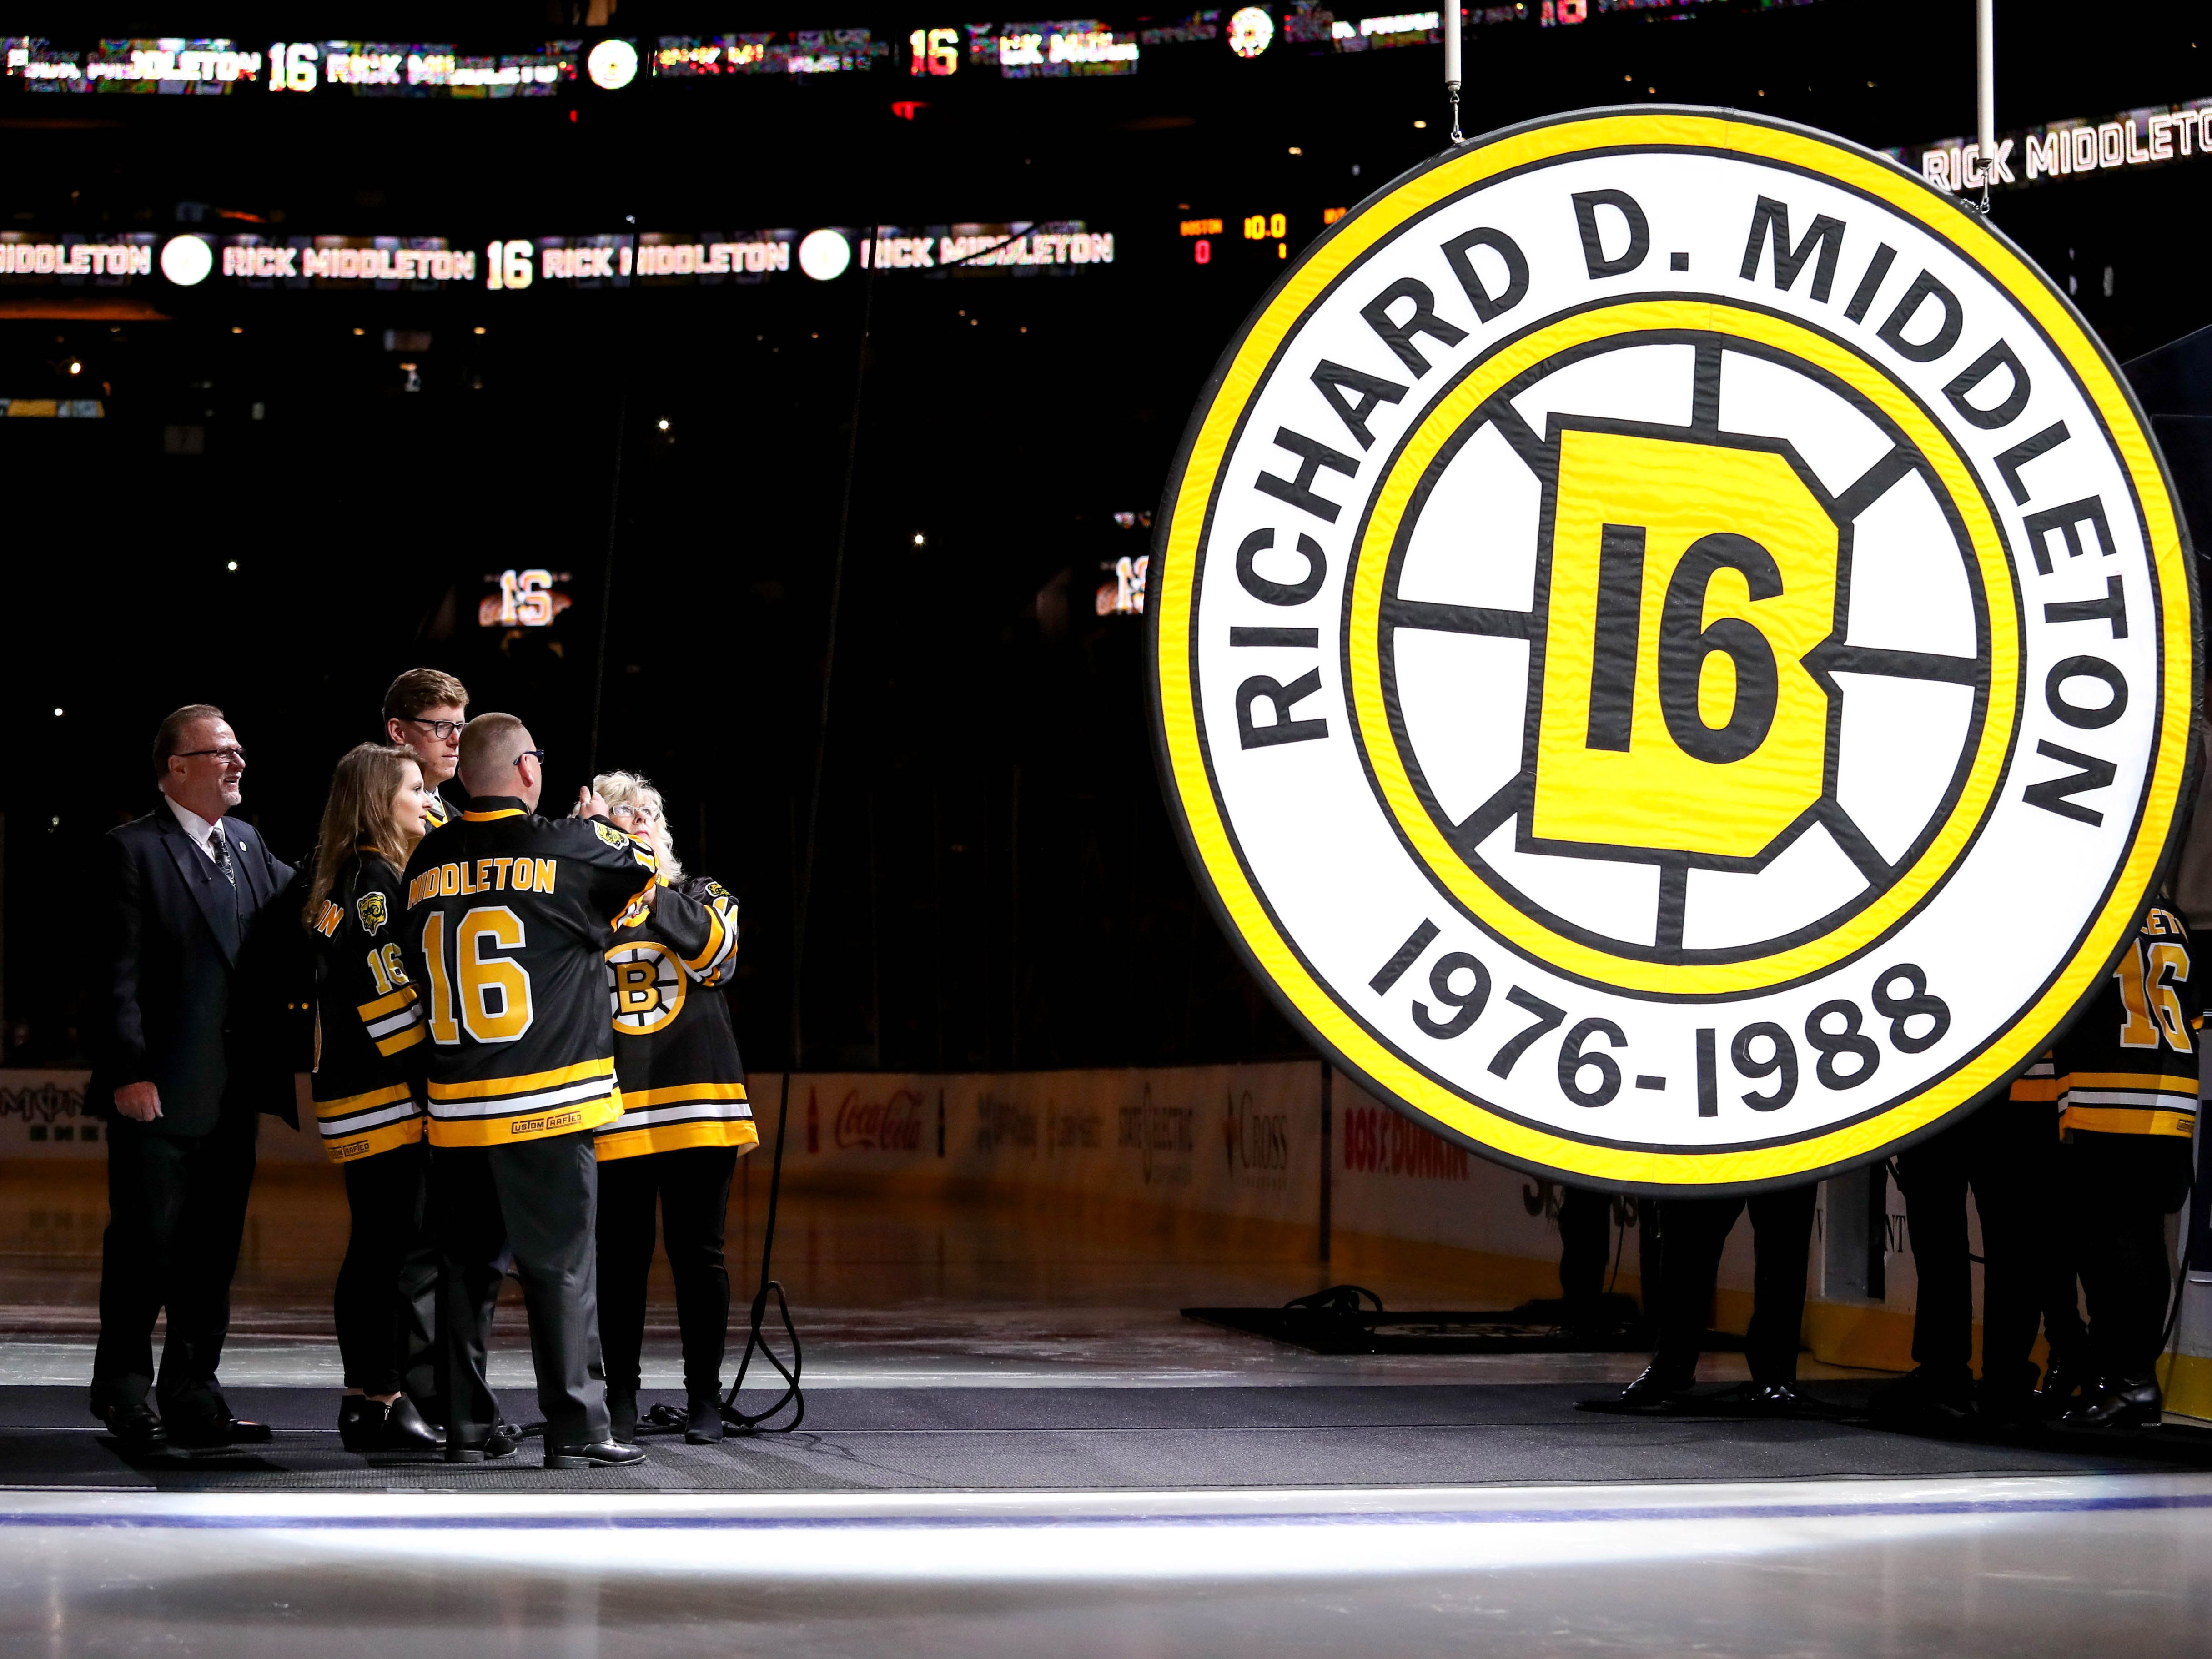 Nov. 29: Former Boston Bruins star Rick Middleton (far left) watches as his retired number is raised to the rafters at TD Garden.